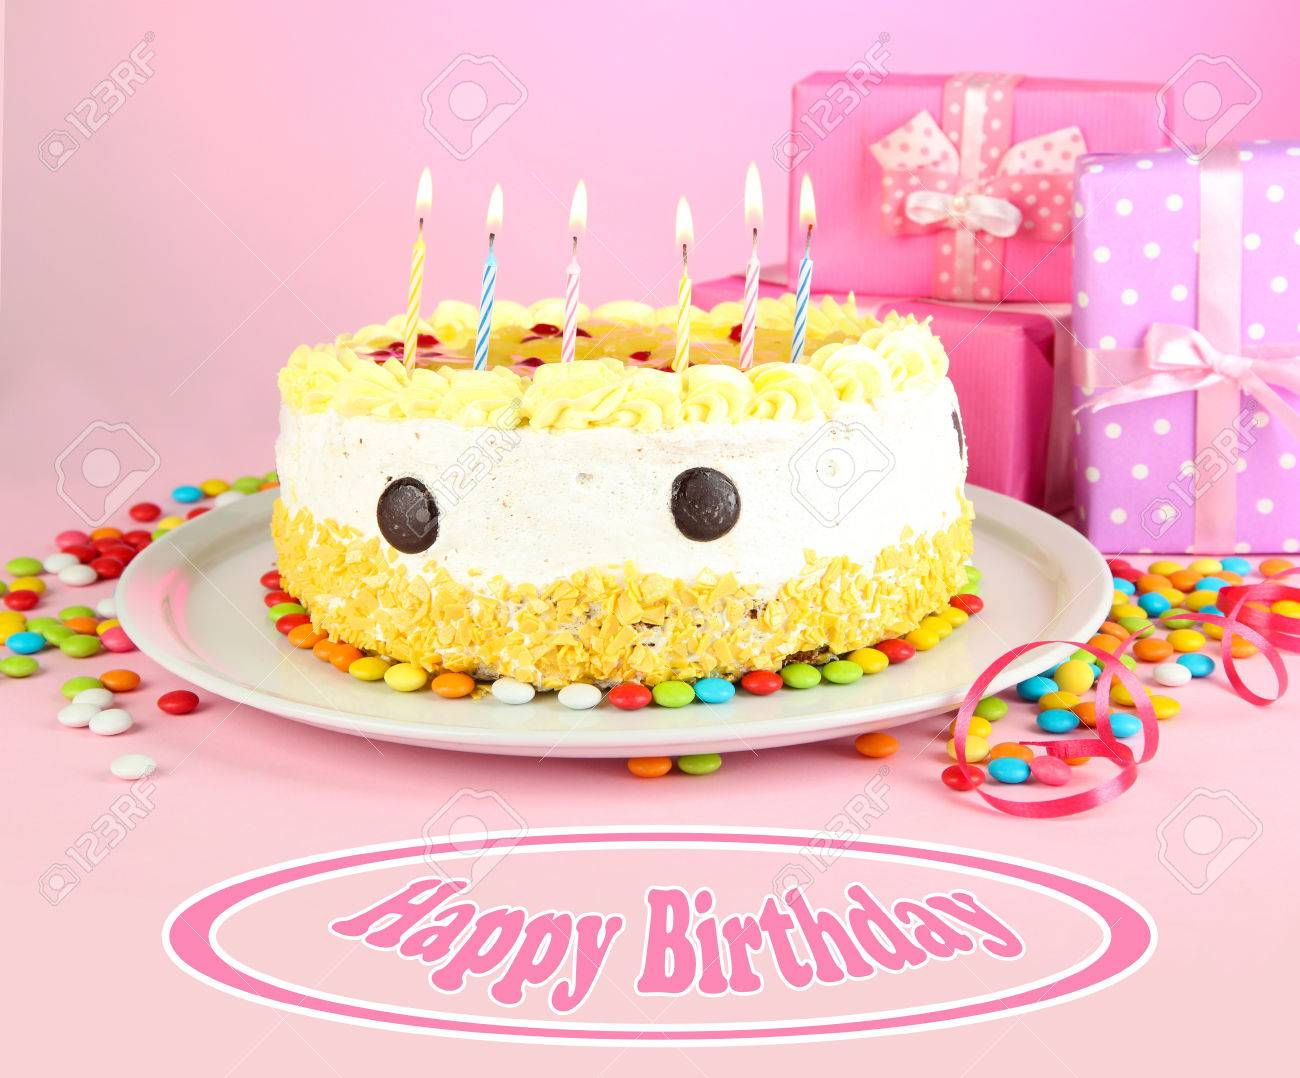 Birthday PostcardHappy Cake And Gifts Stock Photo